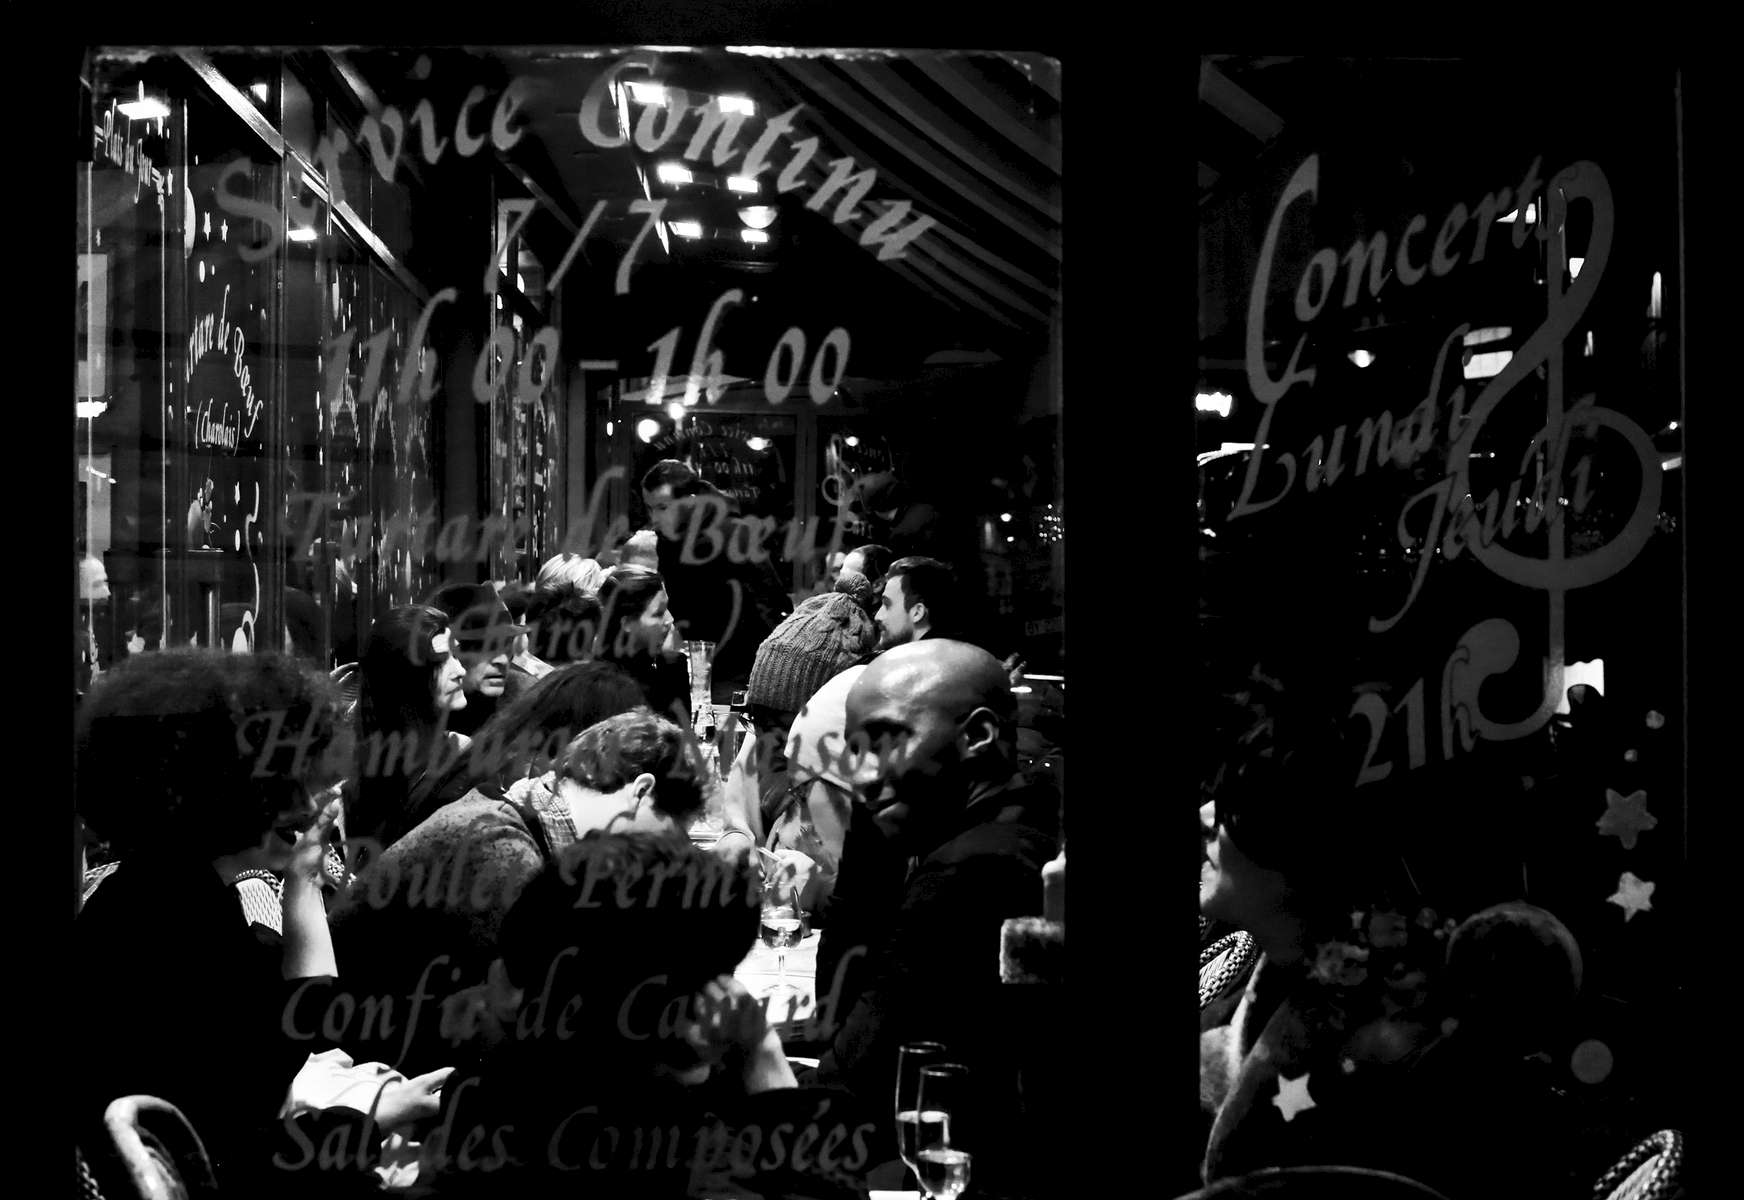 People eat at the terrace of the restaurant {quote}le Saint-Jean,{quote} located in Montmartre, located in the 18th district of Paris, on December 20, 2015, Paris, France.  It is believed that  this district was also targeted during the November 13 terrorist attacks. More quiet since the attacks, Montmartre is still lively with a lot of parisiens and tourists enjoying the neighborhood.